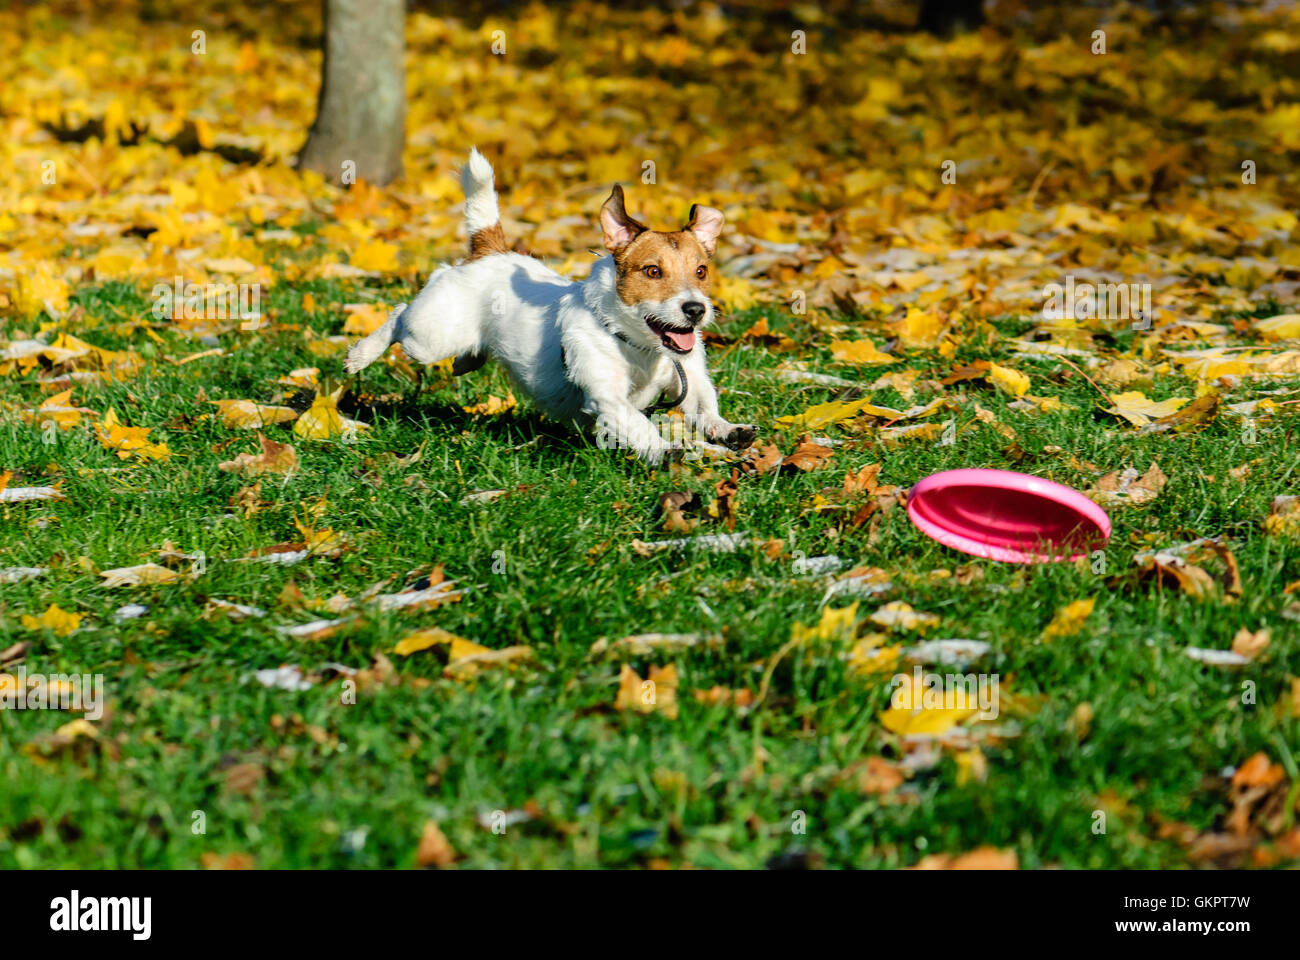 Dog running and playing with flying disk on yellow leaves - Stock Image